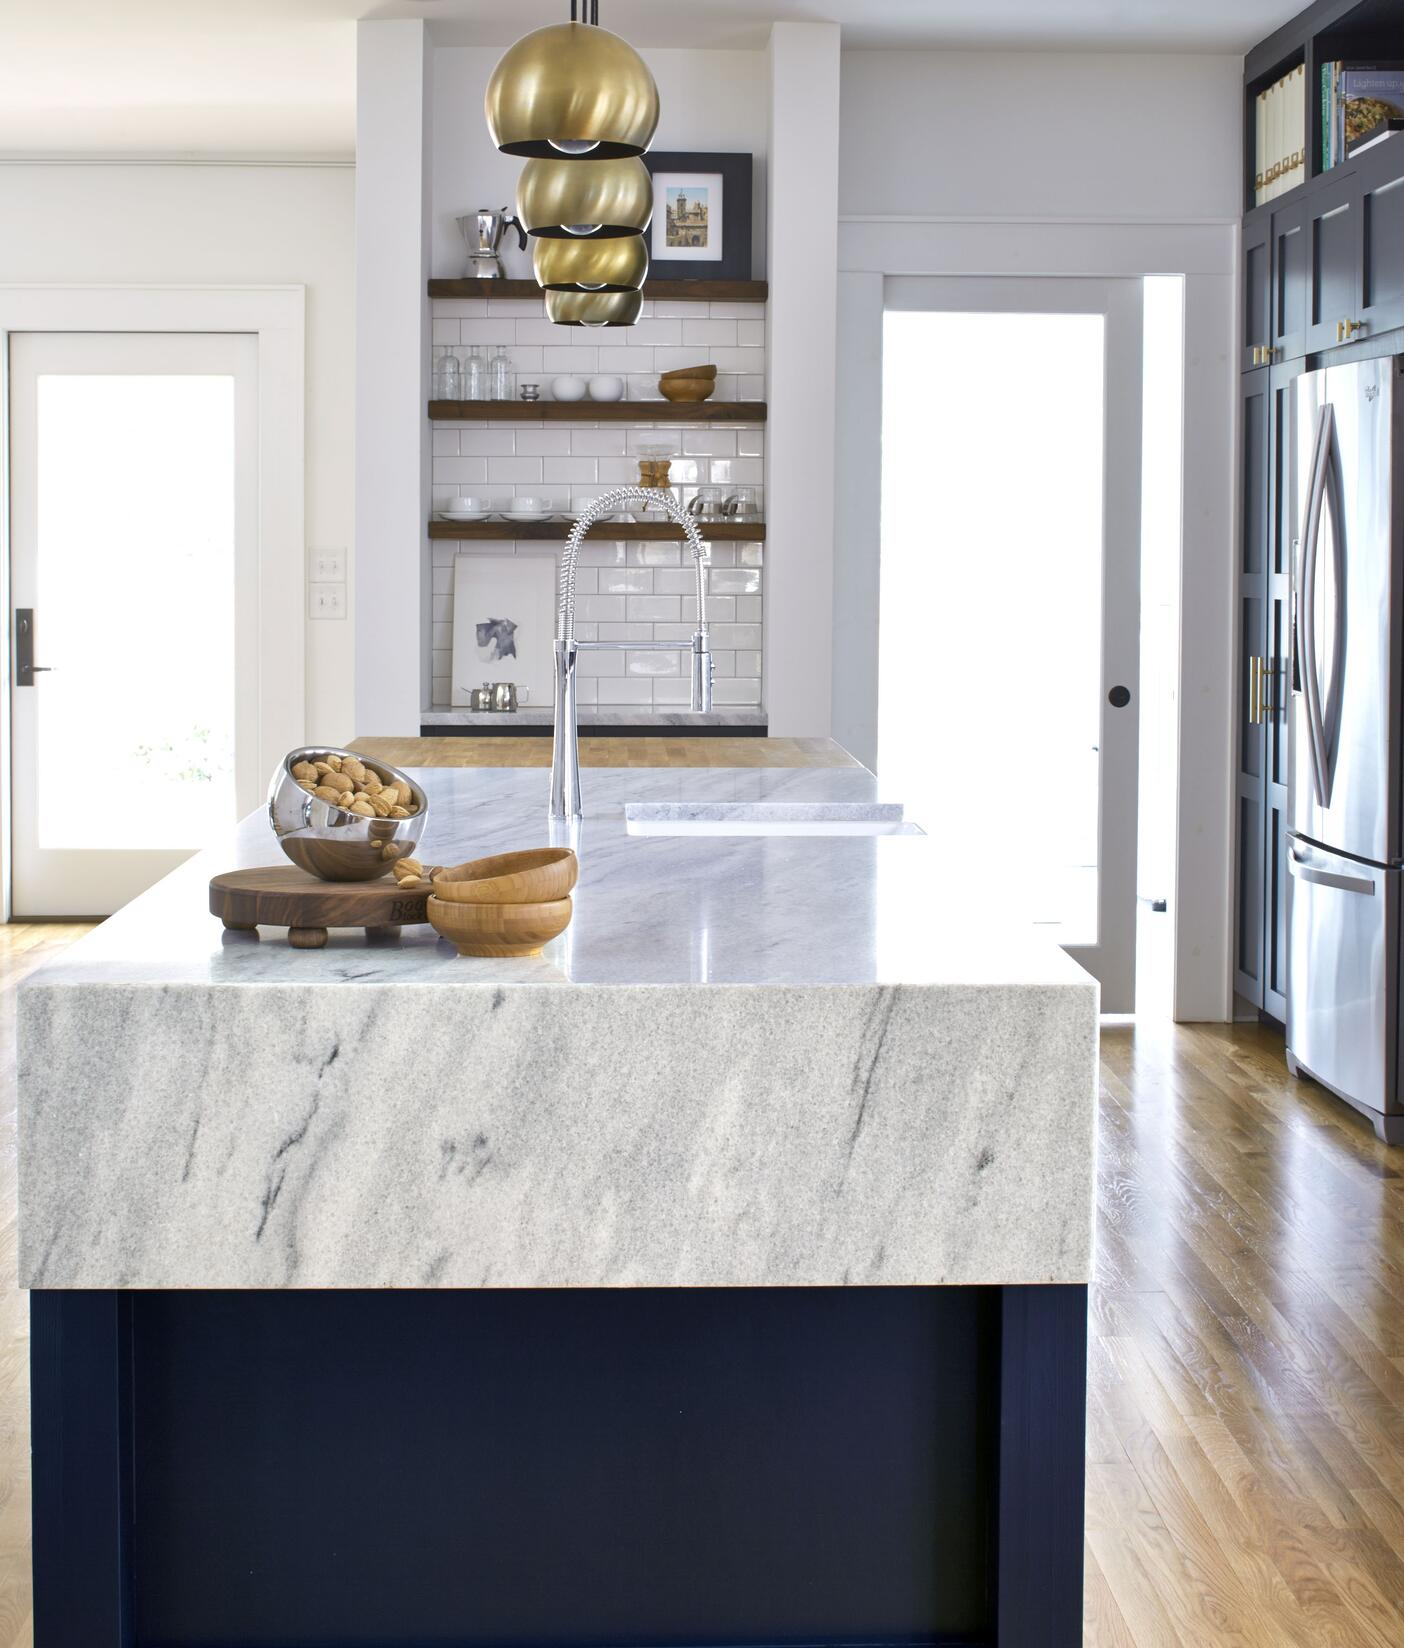 White-cherokee-american-marble-kellen-minor-kitchen-1-460645-edited.jpg